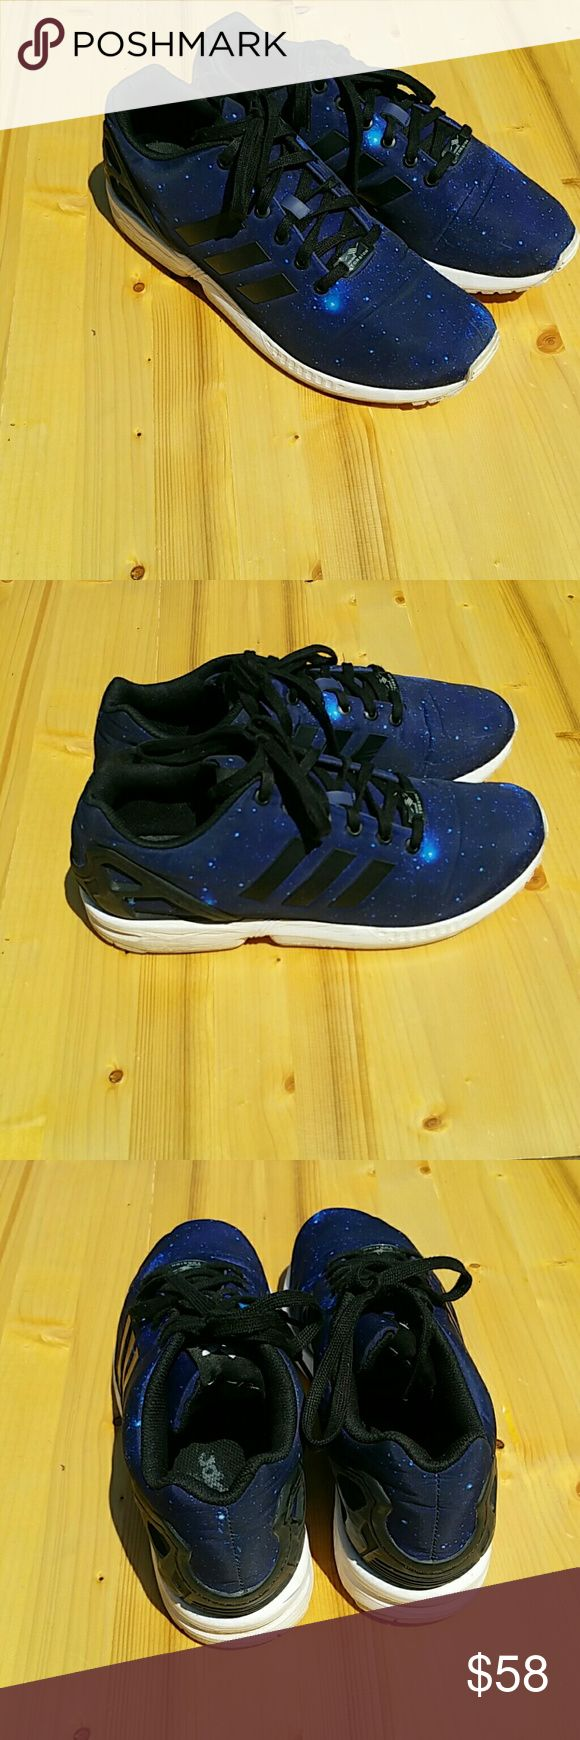 ADIDAS Torsion ZX FLUX GALAXY MEN SIZE 11 ADIDAS ZX FLUX GALAXY MEN SIZE 11 REFLECTIVE 3M B34056 ORIGINAL / Made in Vietnam adidas Shoes Sneakers